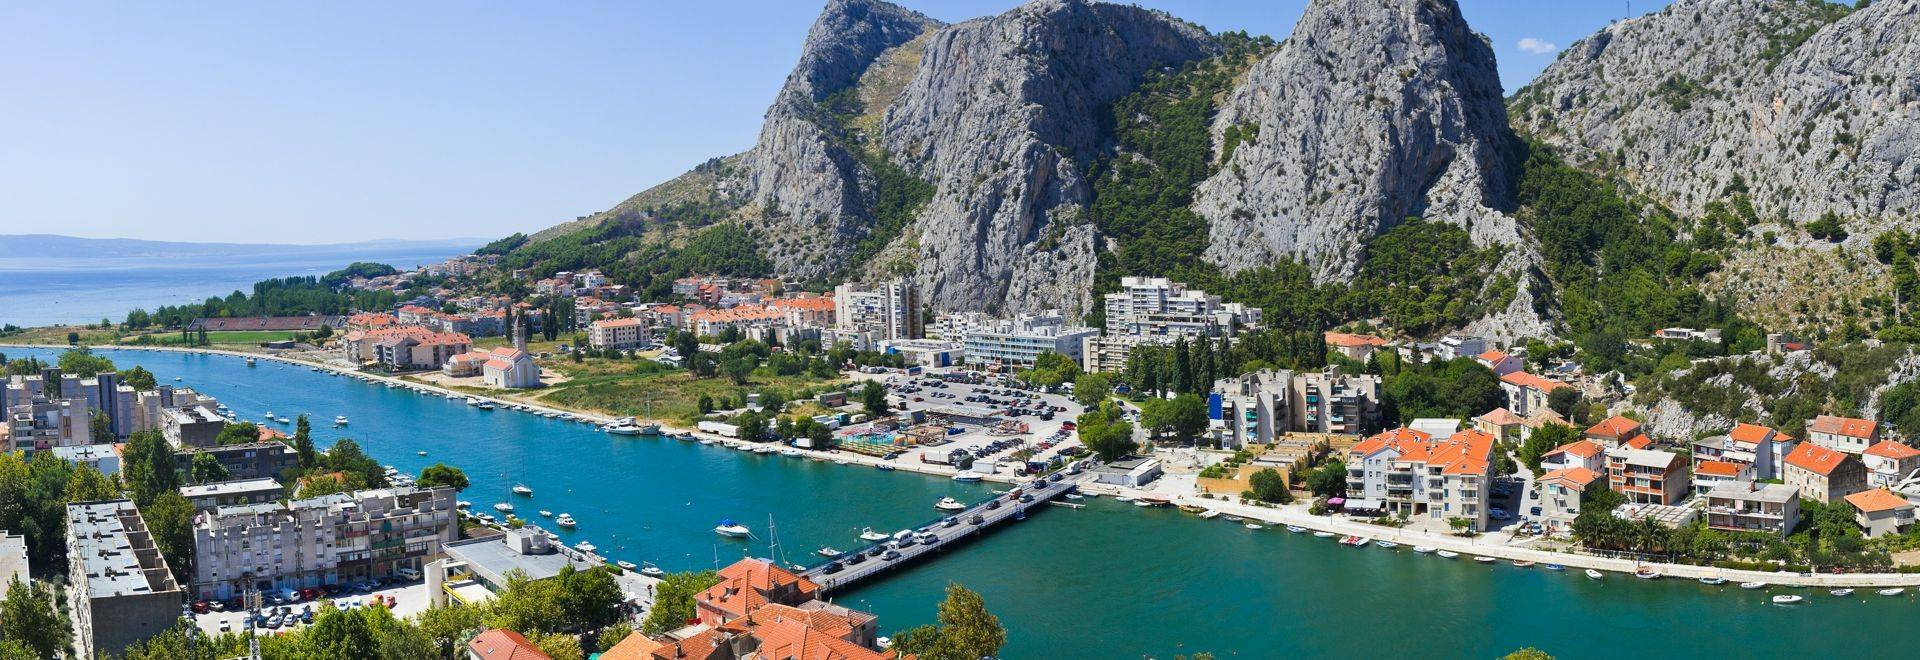 Town Of Omis Shutterstock 133347503   Main